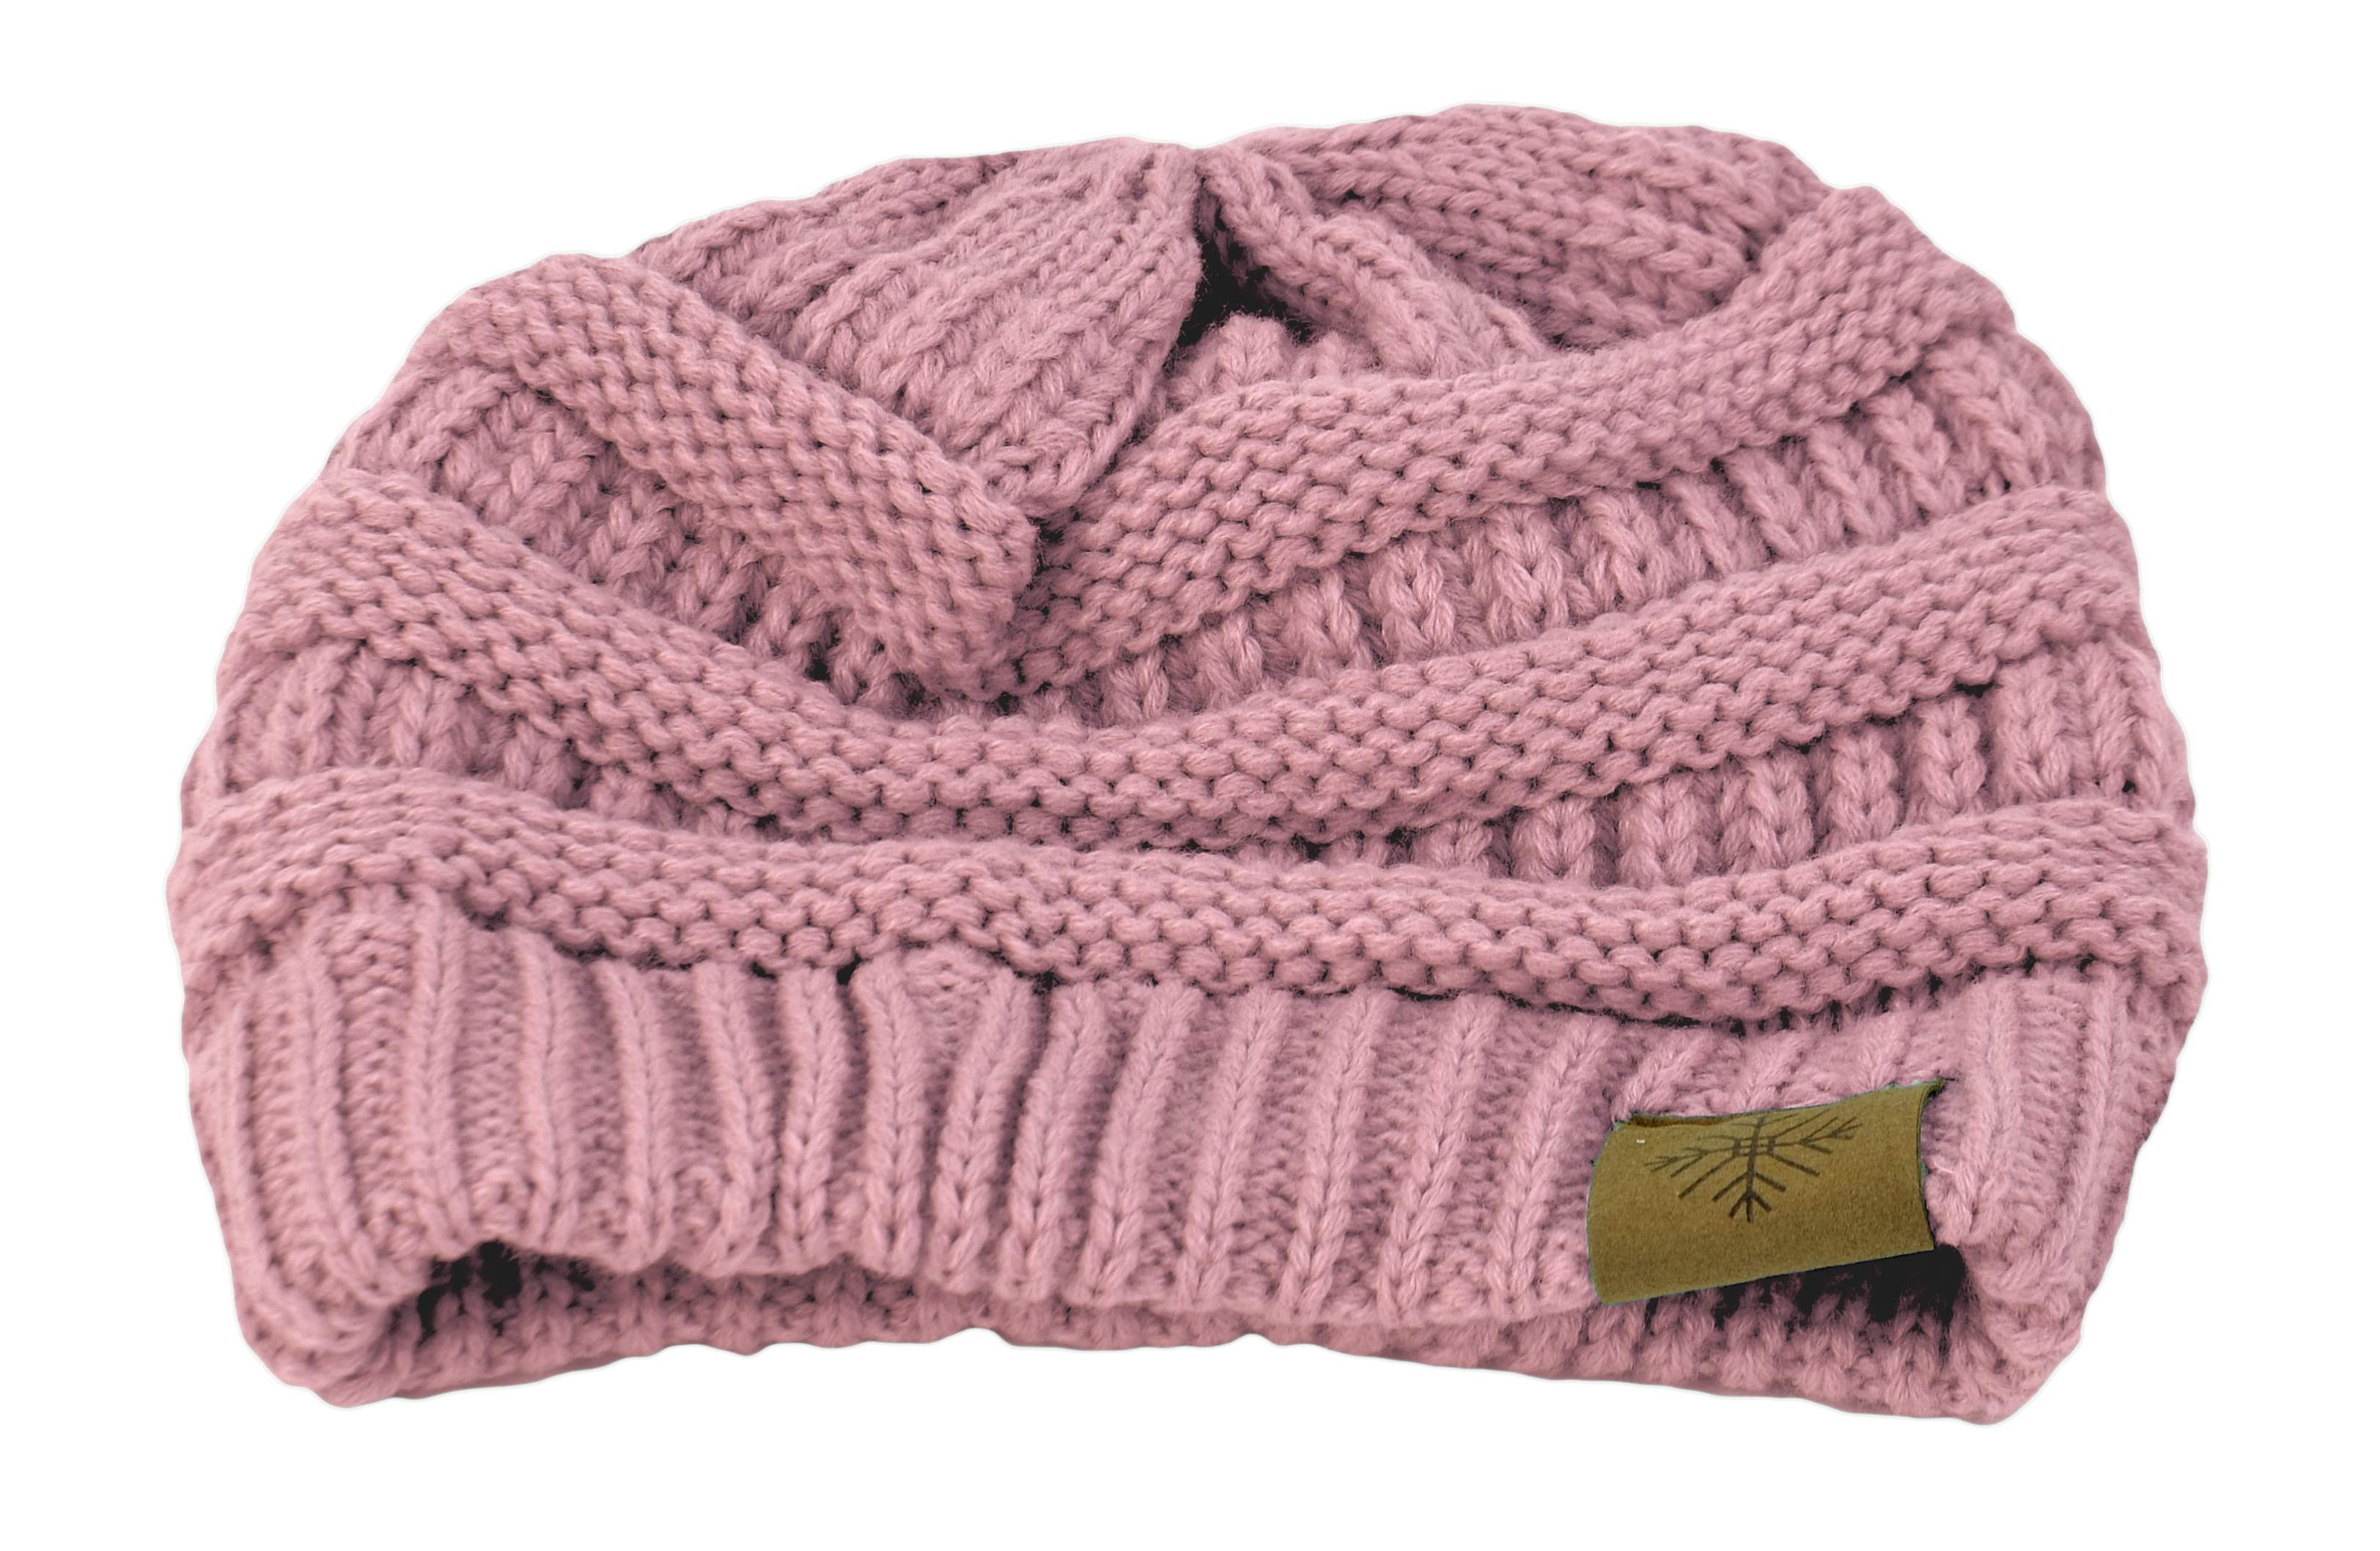 Belle Donne - Women's Winter Fleece Lined Cable Knitted Pom Pom Beanie Hat - Pink-II